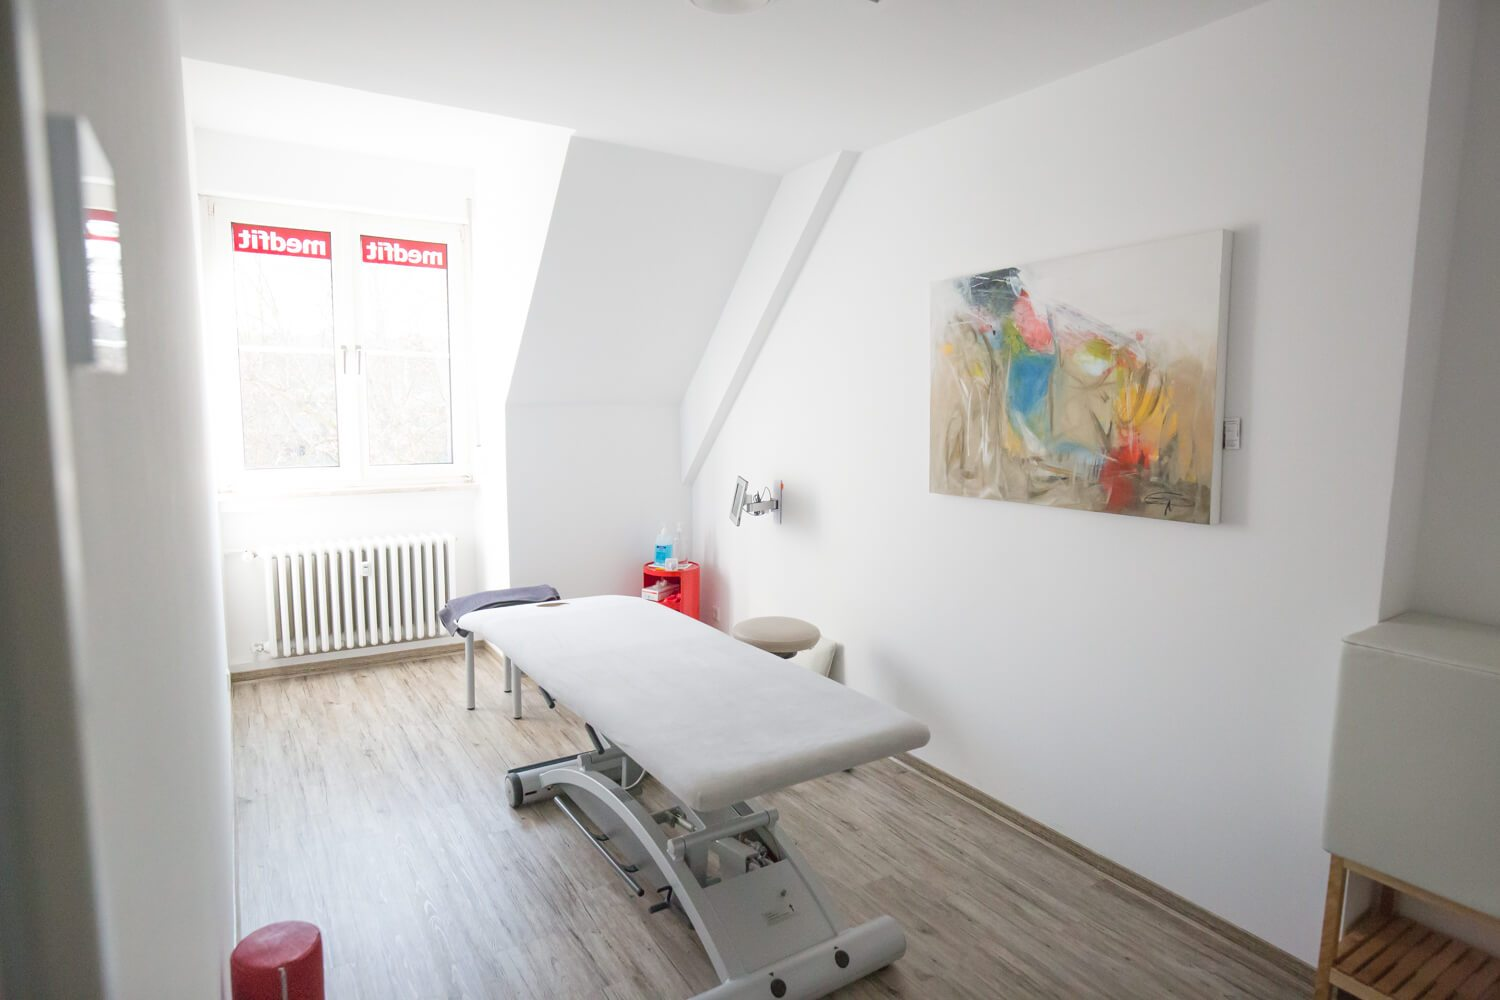 medfit Physiotherapie Bruchsal Behandlungsraum